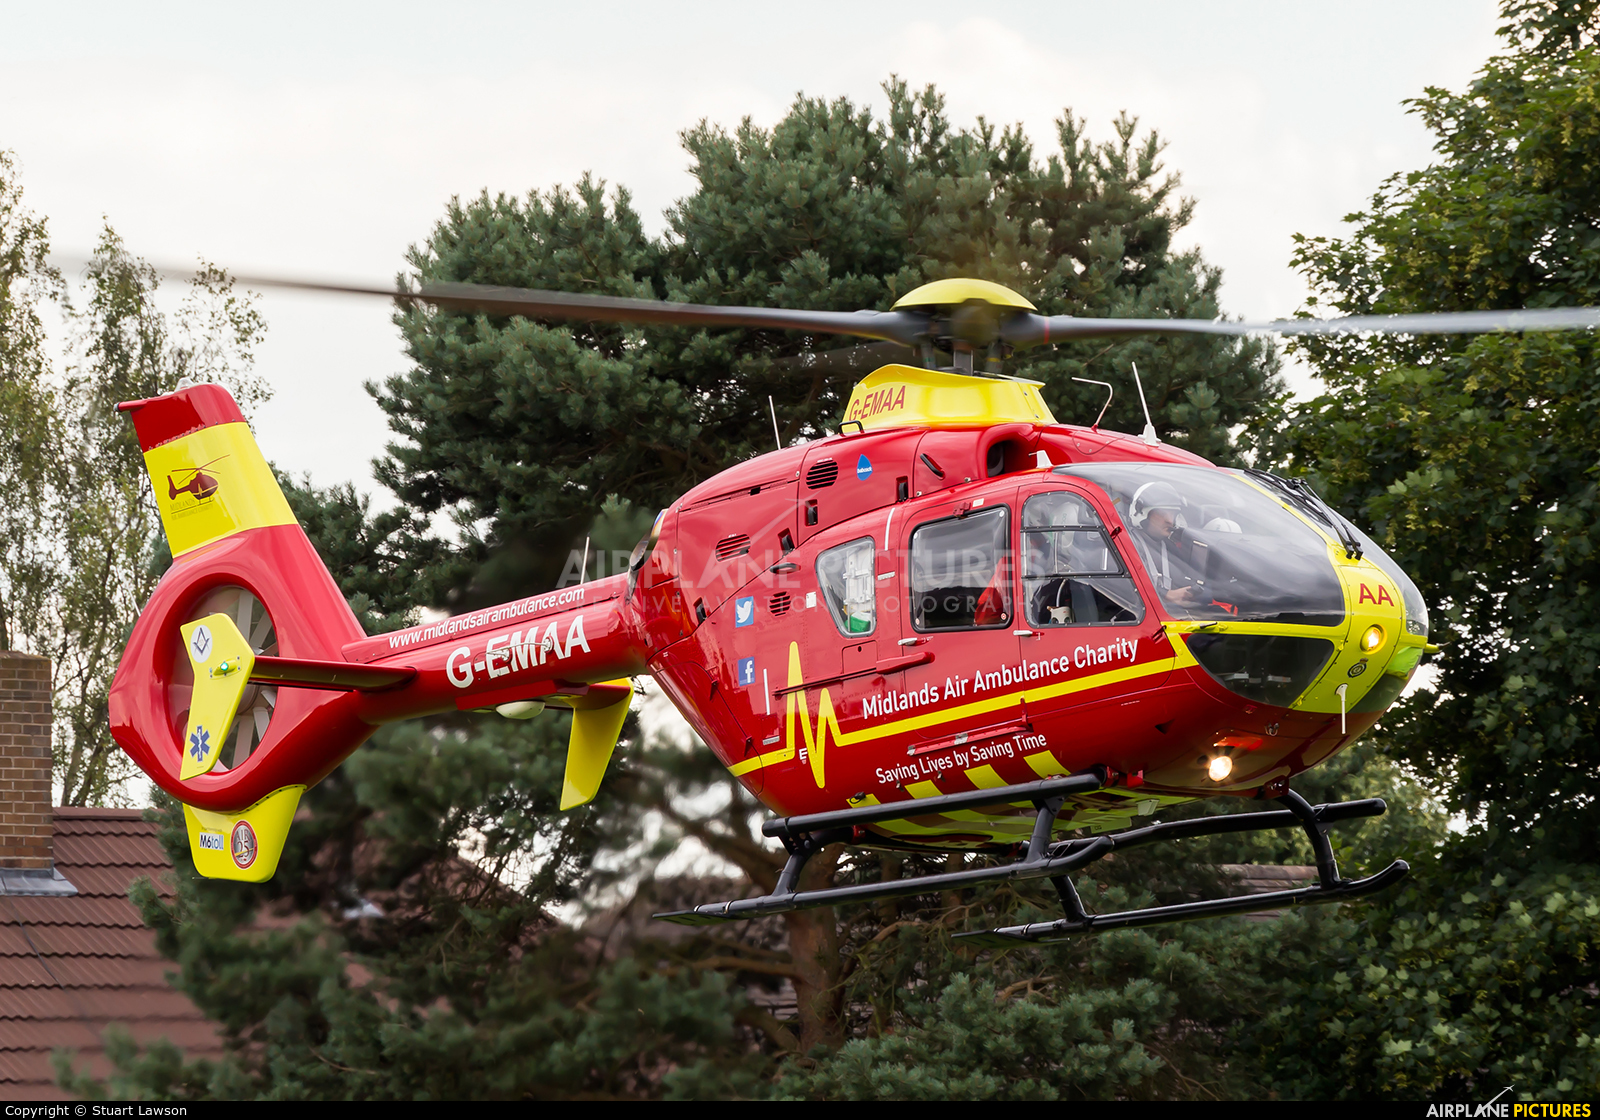 Midlands Air Ambulance G-EMAA aircraft at Unknown Location